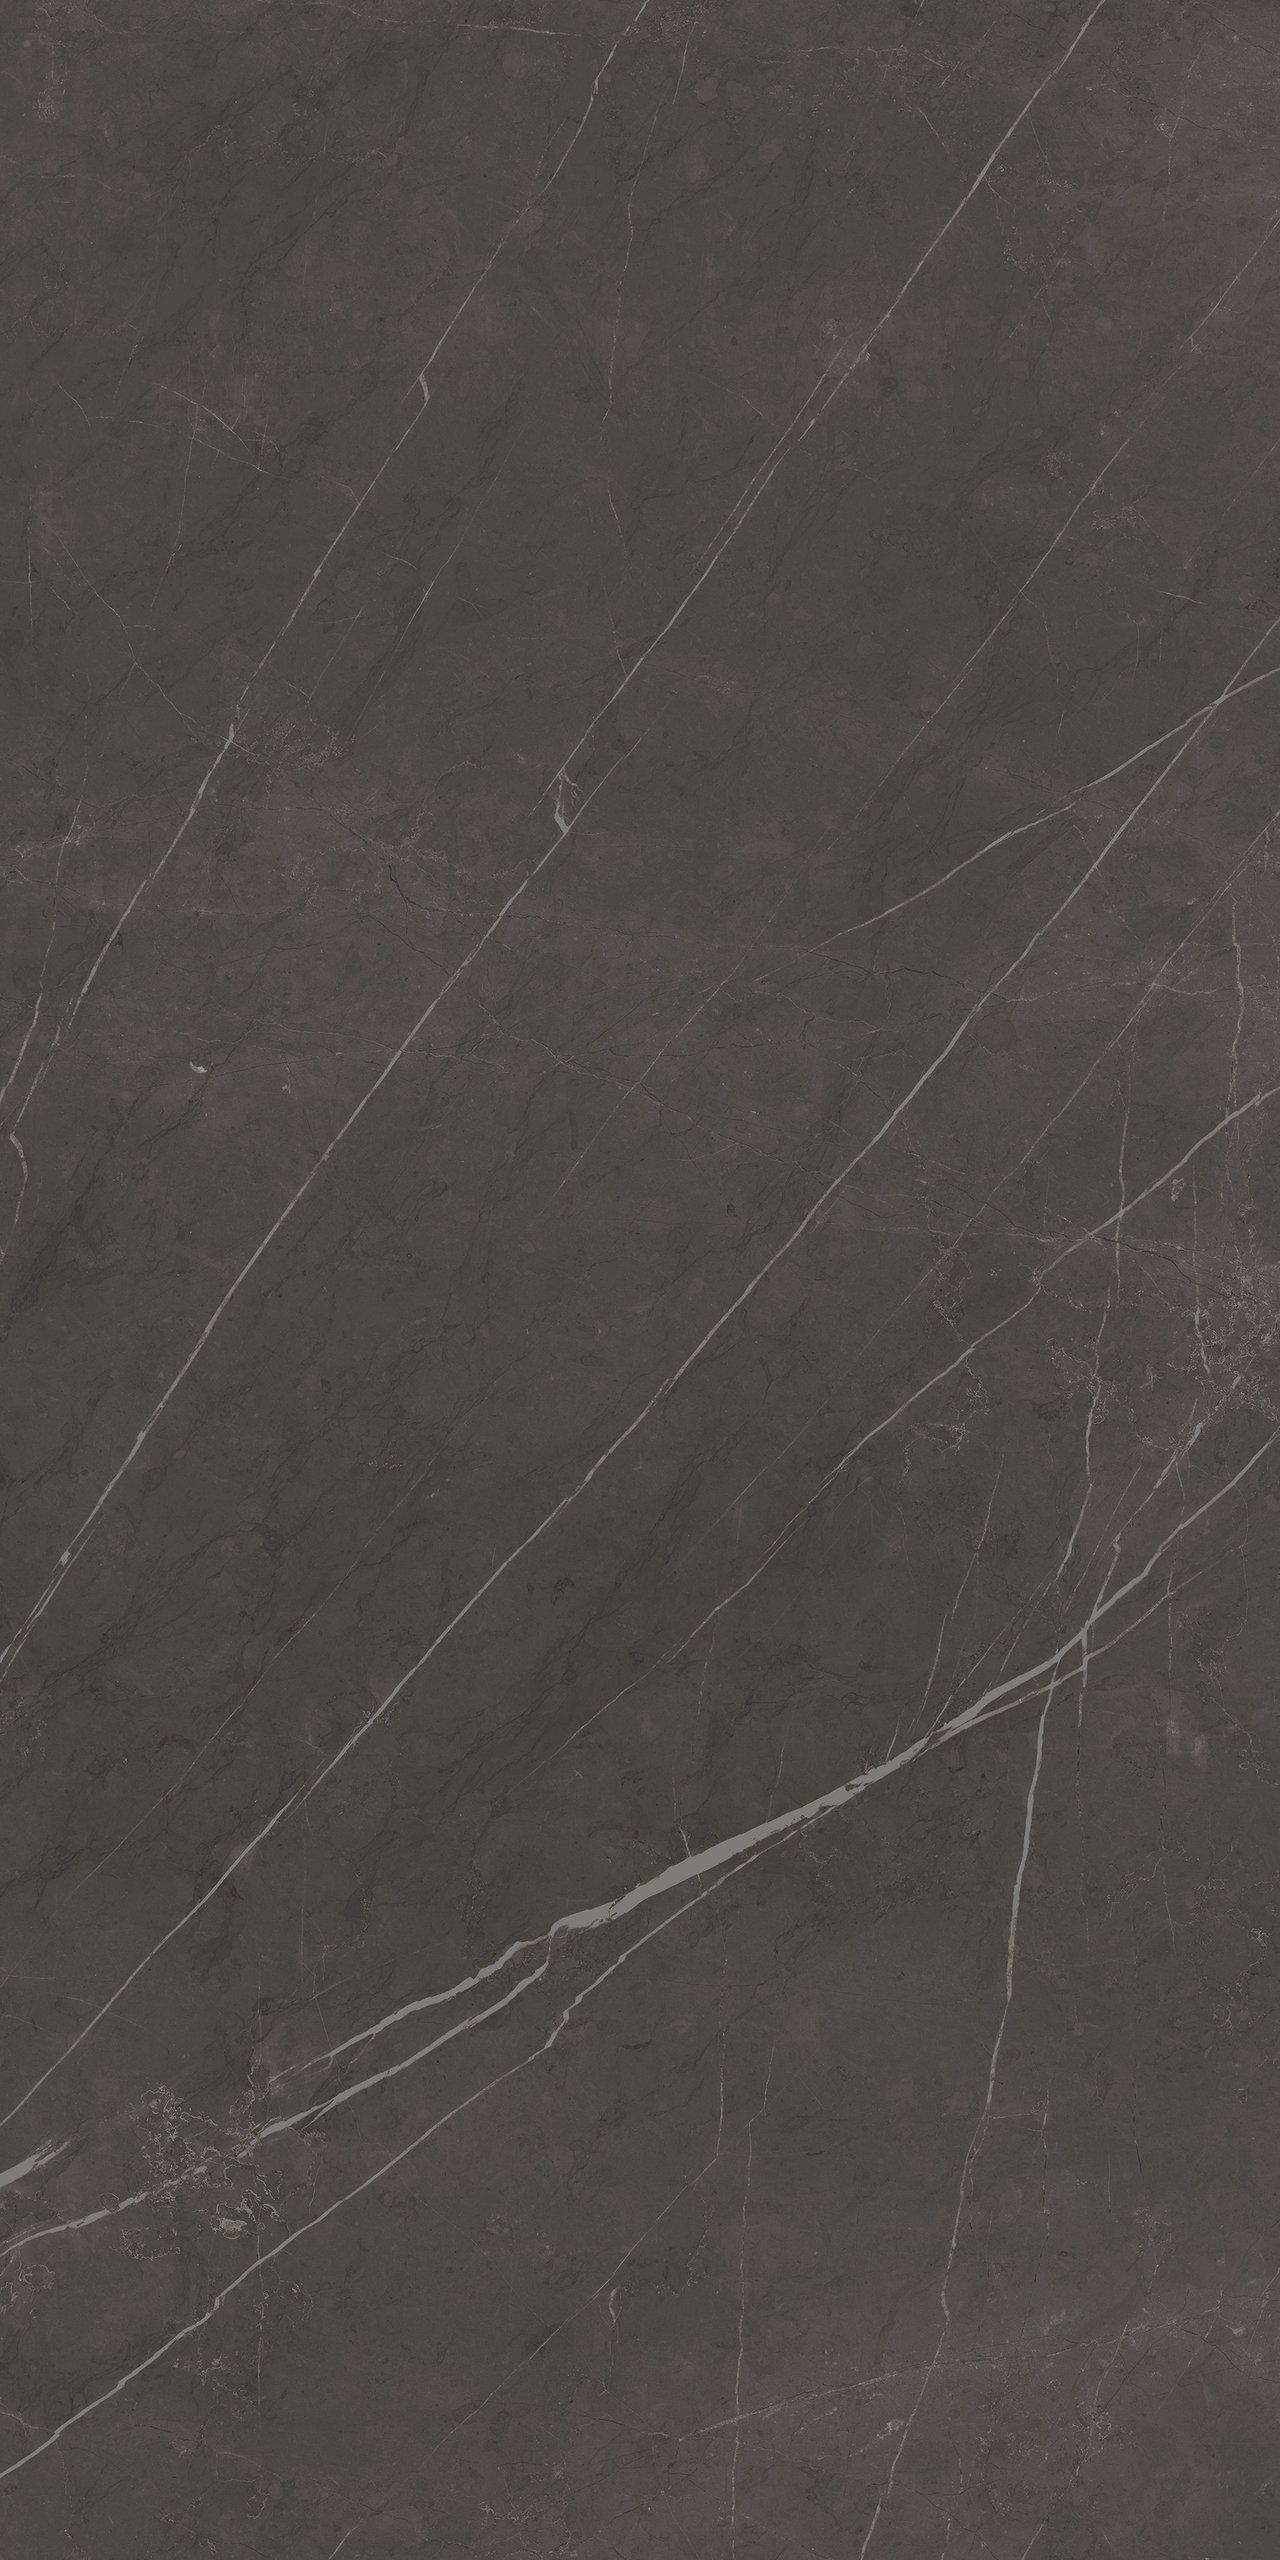 Pin By Fangfangjun On Fiandre Marble Lab Marble Texture Tiles Texture Stone Texture